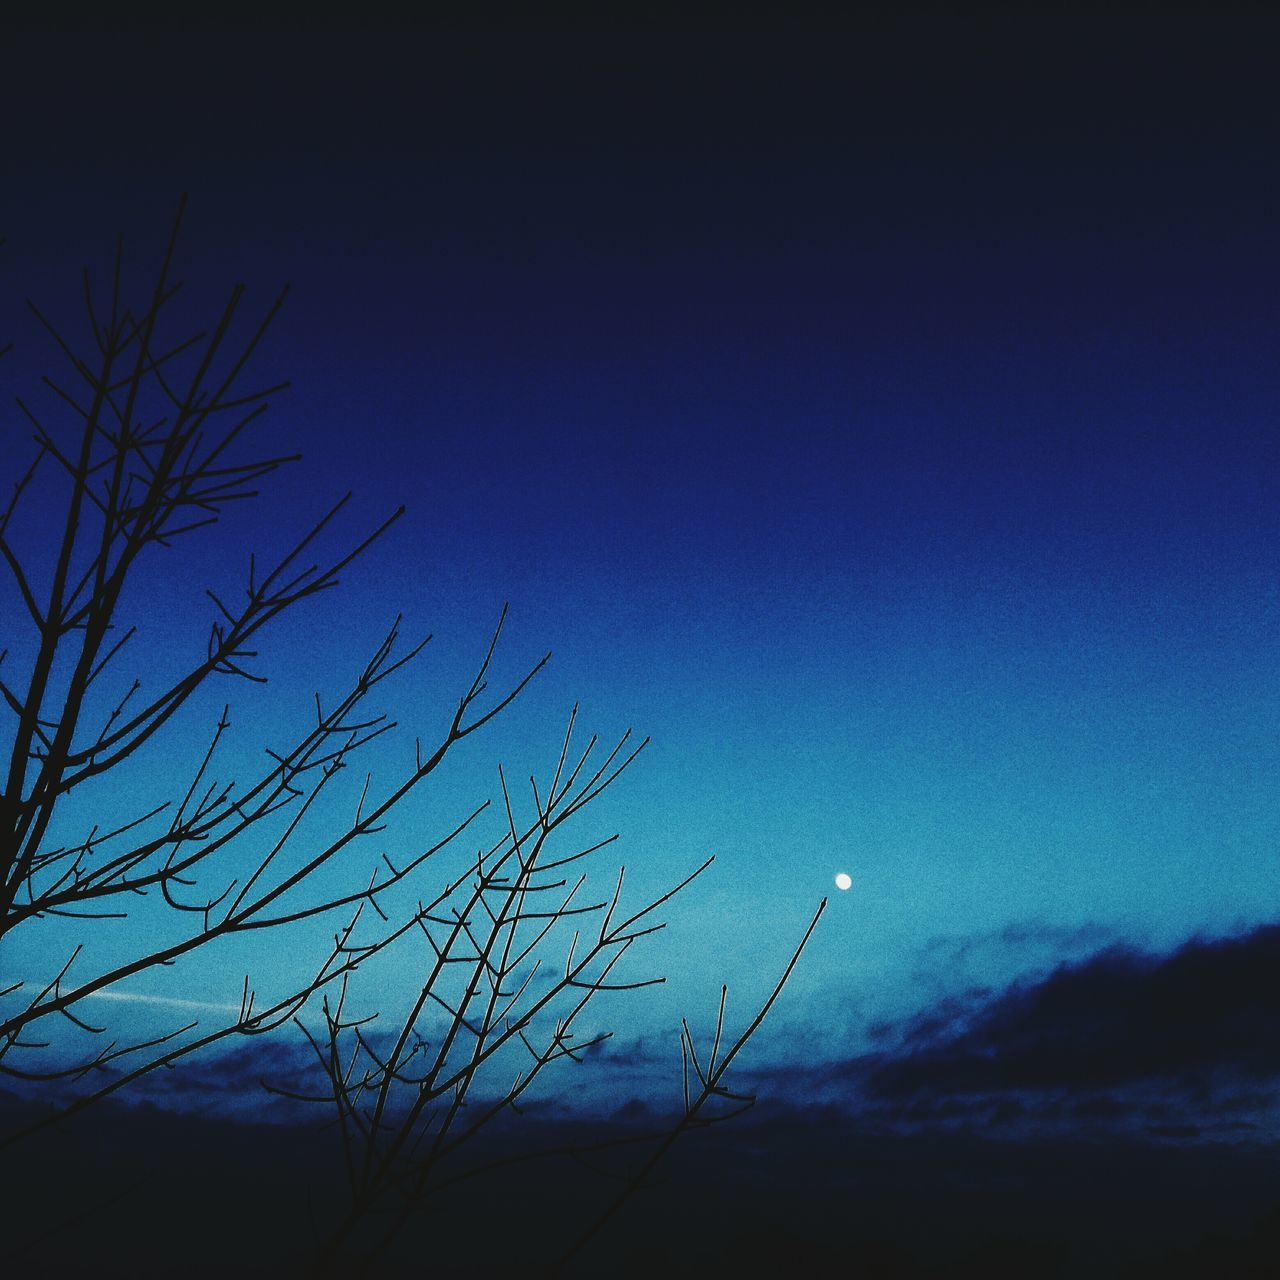 To the moon and back. Blue Sky Nature Bare Tree Outdoors Tree No People Beauty In Nature Star - Space Astronomy Night Asthetic Vscosky Vscocam